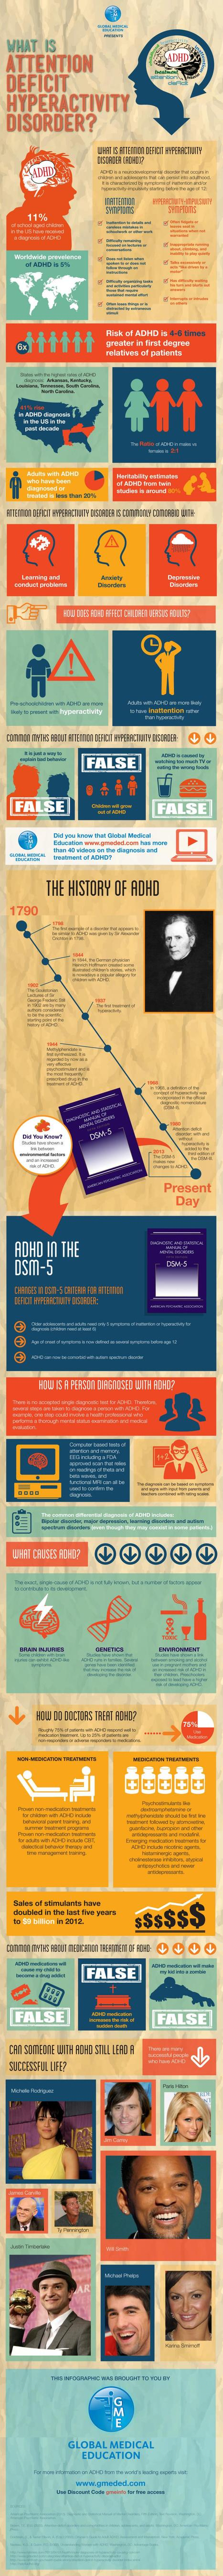 ADHD: What Is It & How Is It Treated? [Infographic] | ADHD | Scoop.it